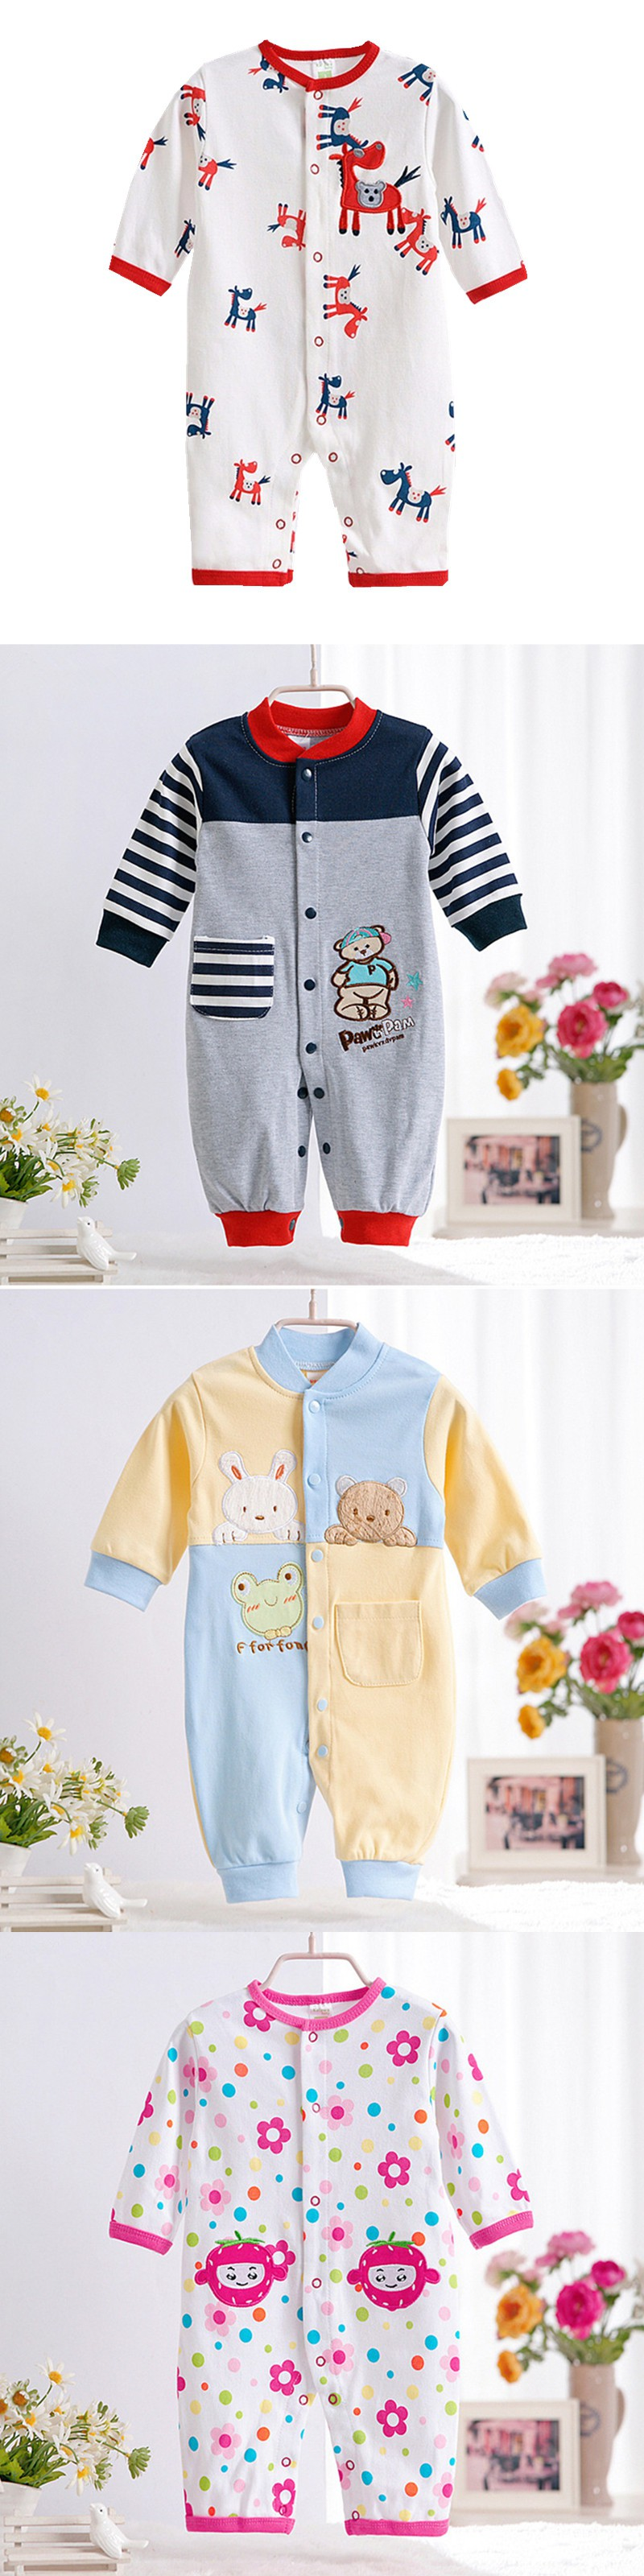 2016 Brand Baby Rompers Cotton Body suits Long Sleeve Girl Boy